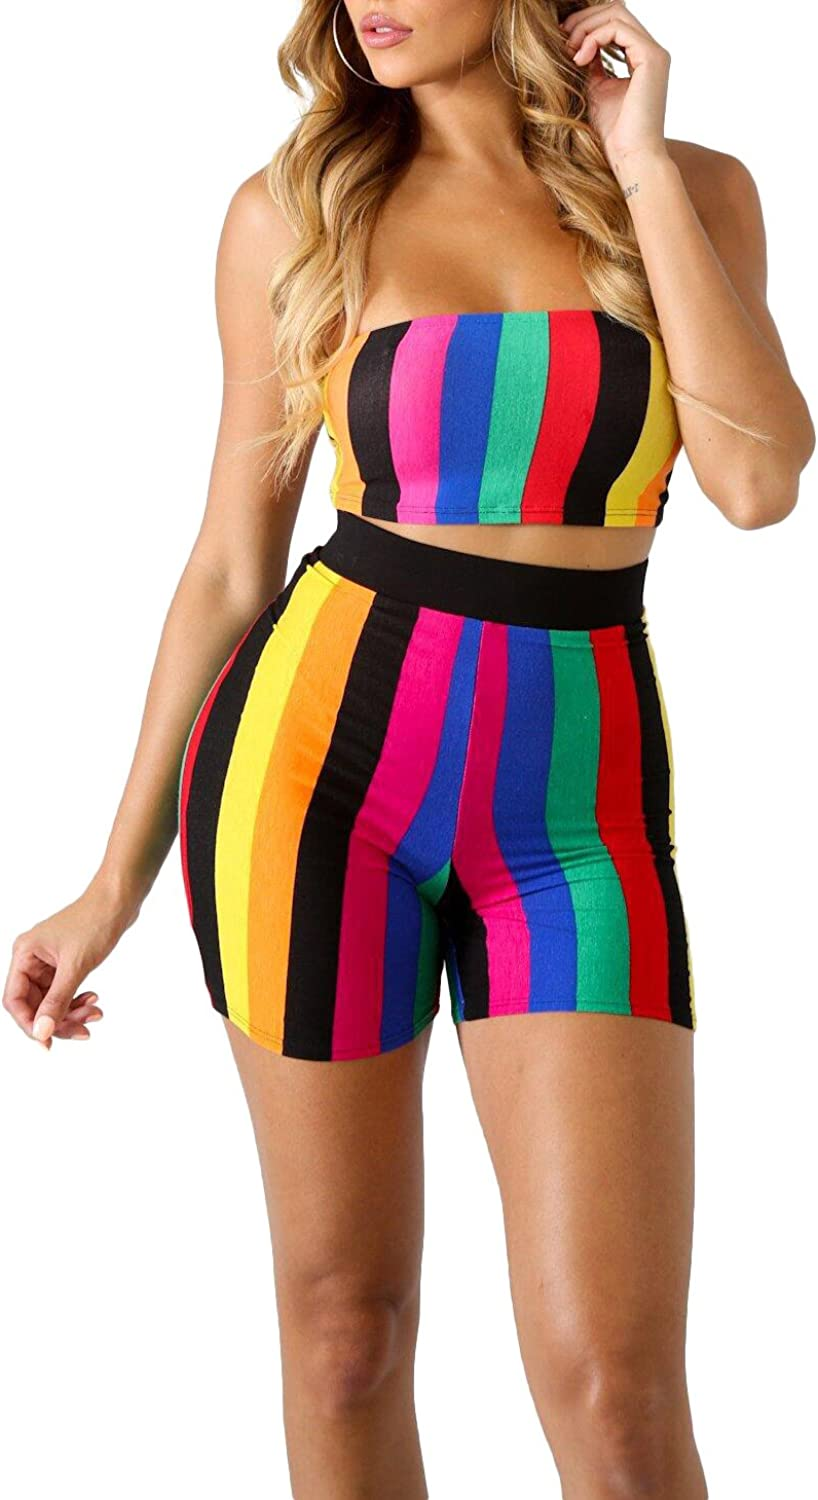 WearFun Womens 2 Piece Outfits Off The Shoulder Crop Tops and Short Pants Tracksuits Set